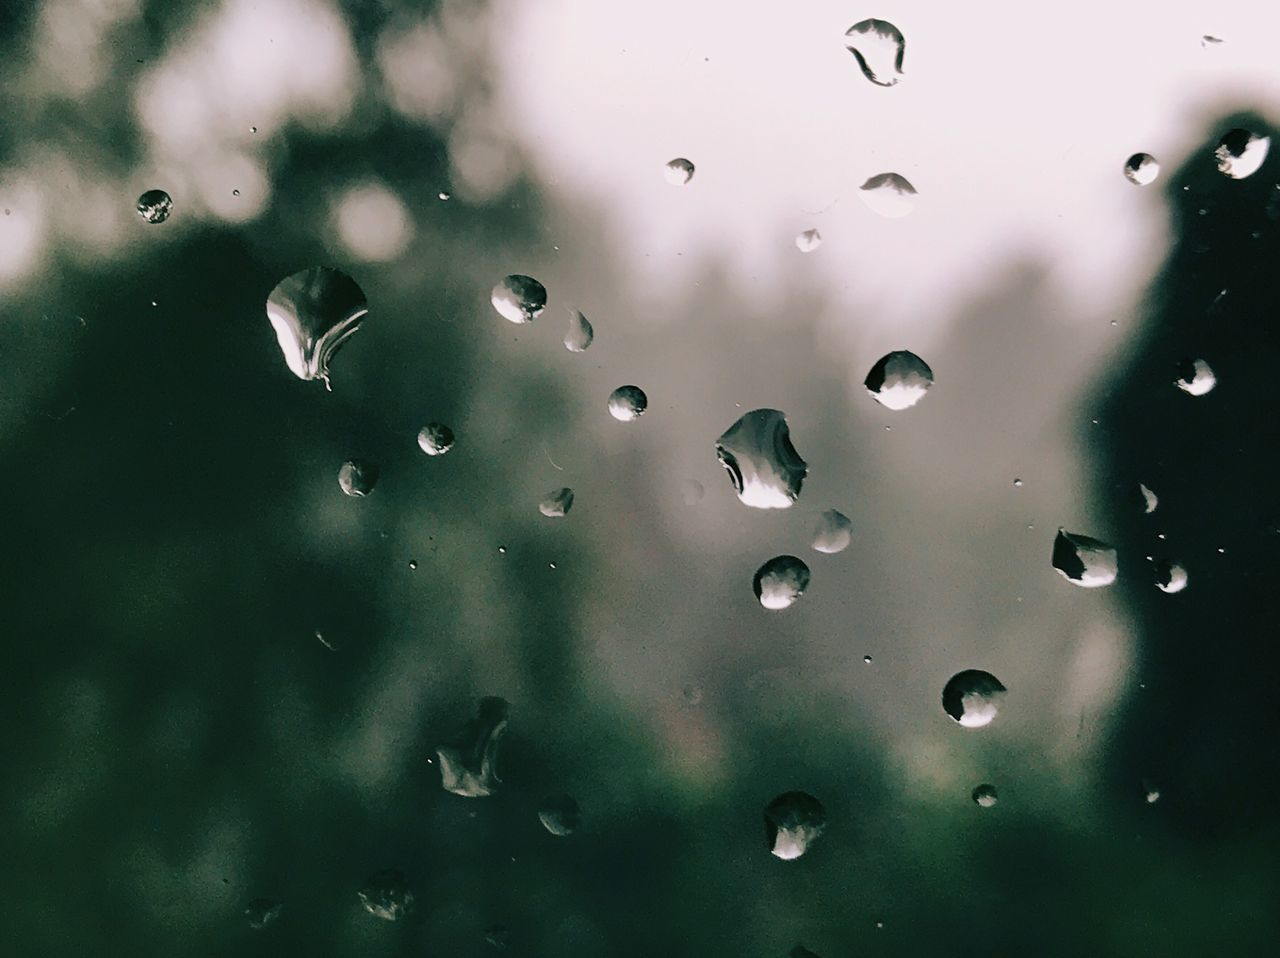 Drop Close-up Full Frame No People Water Backgrounds Green Color Indoors  Wet Day Nature